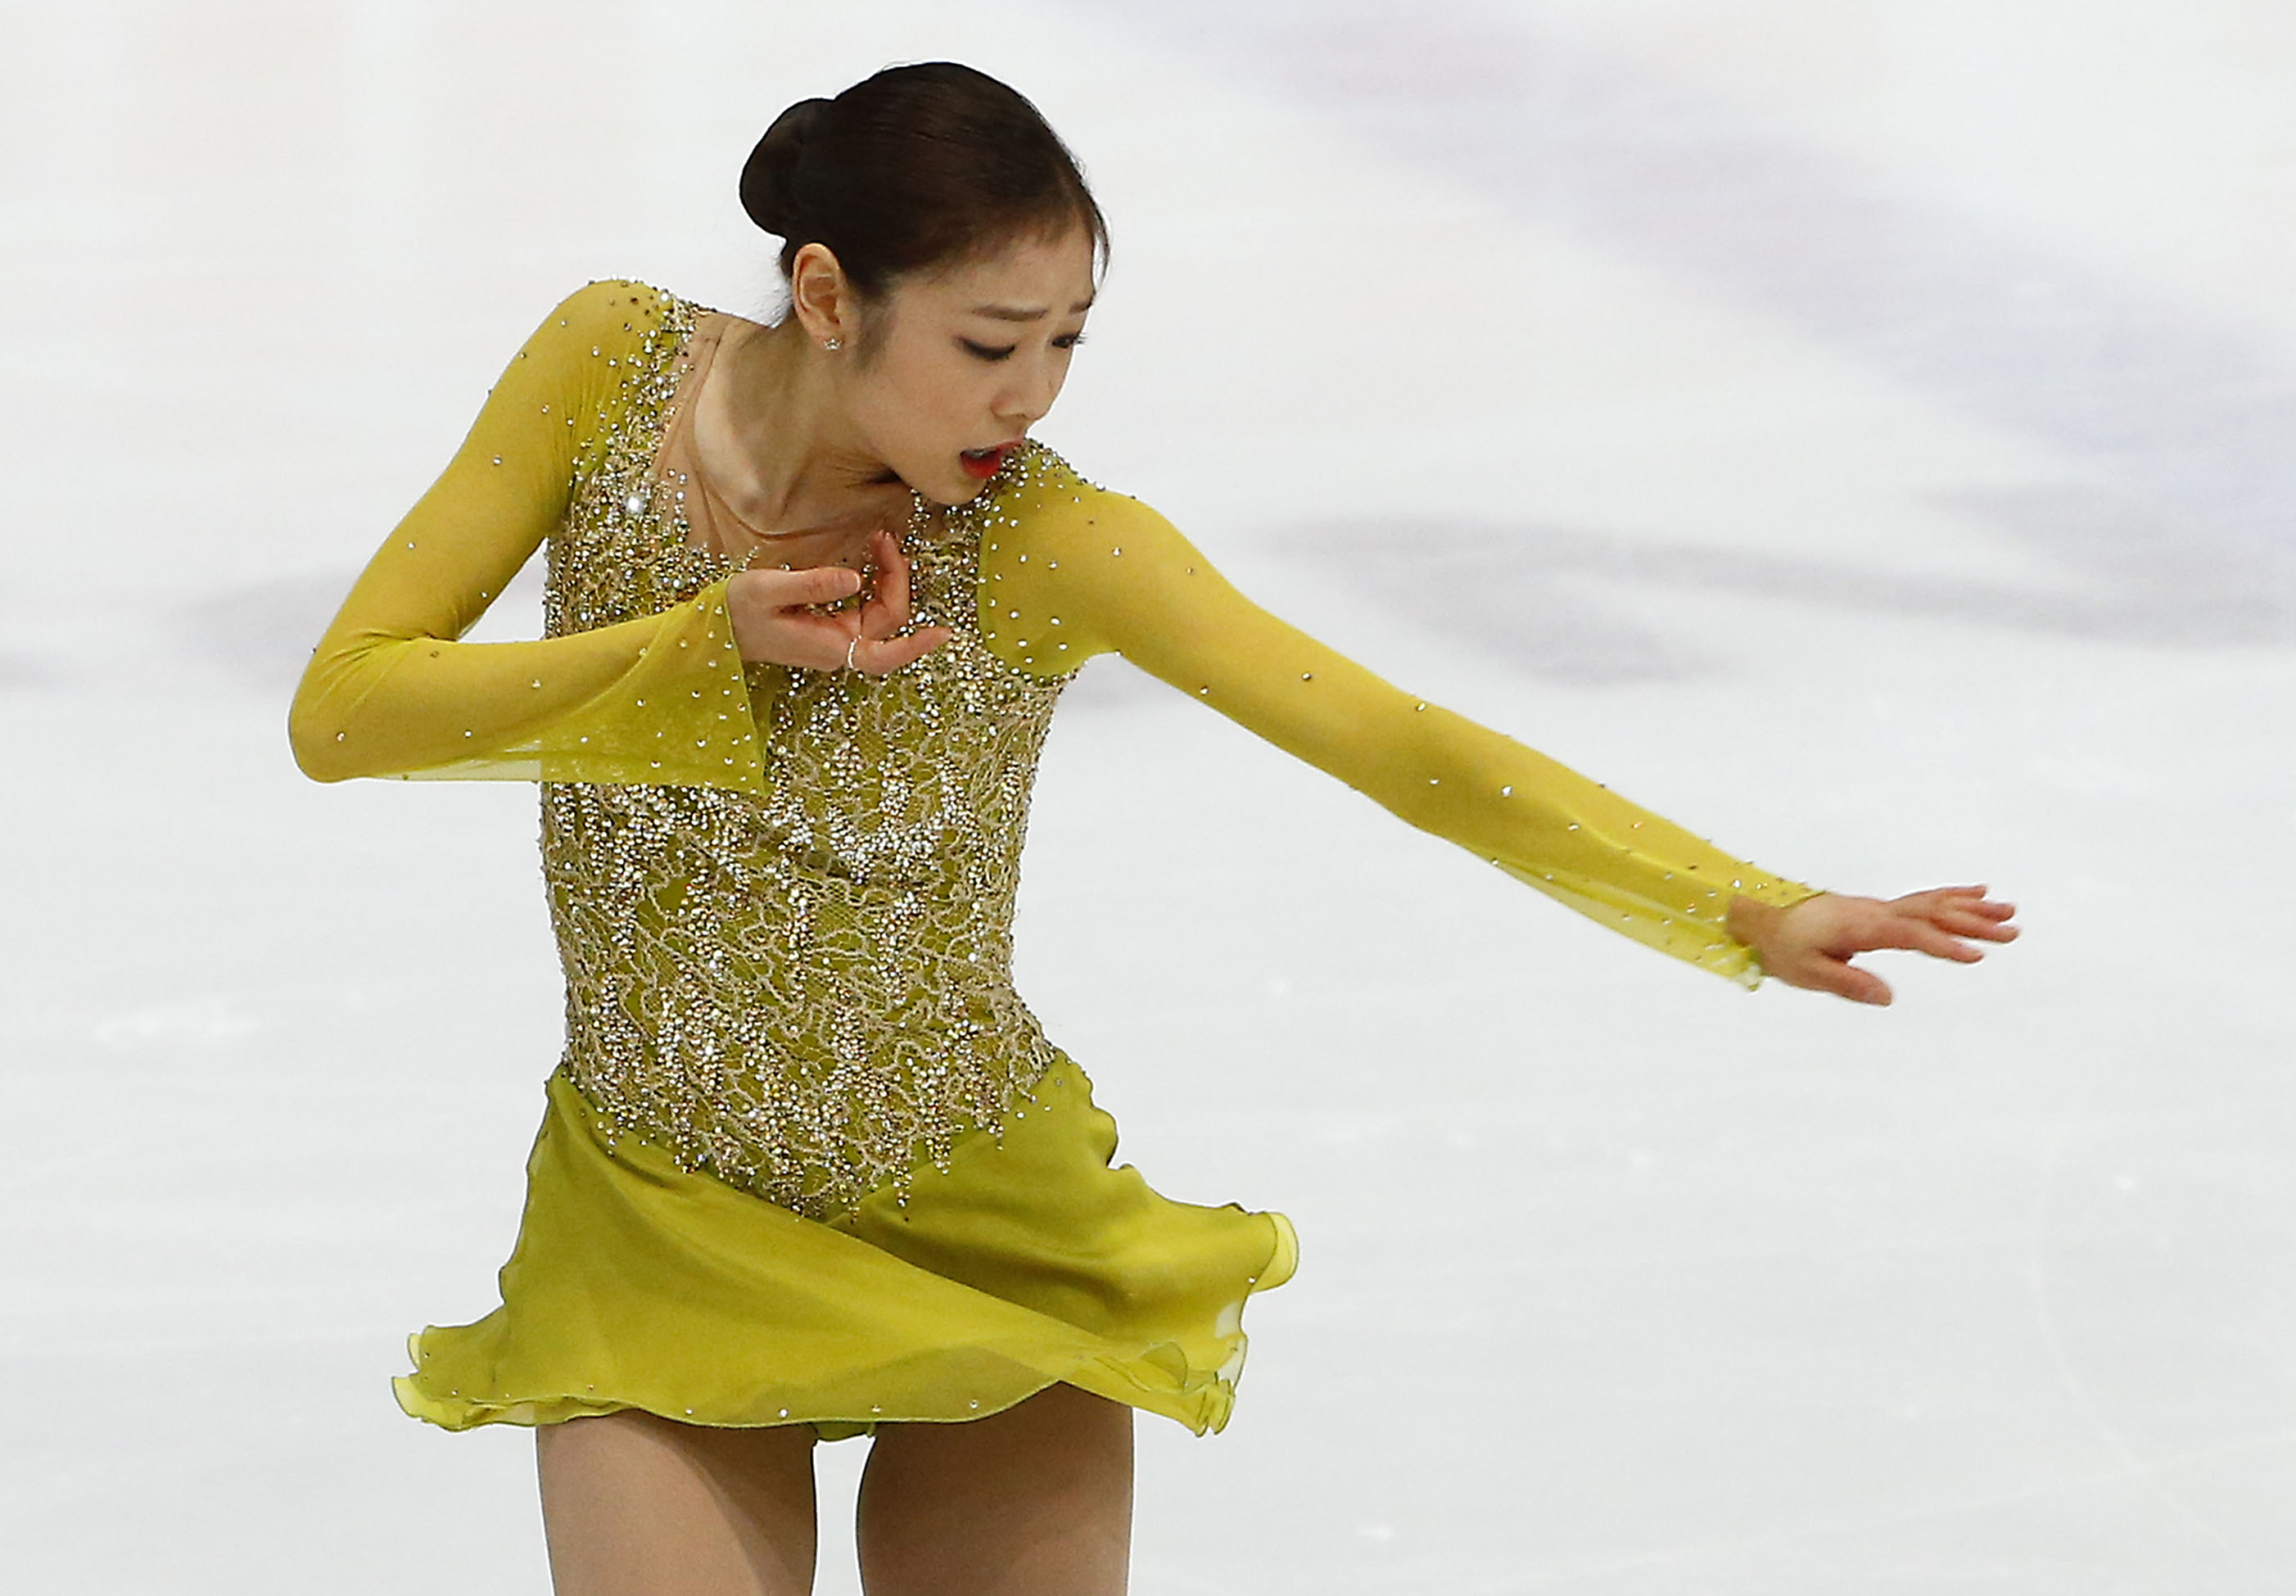 Figure skating Olympic champion Kim Yu-na will try to leave a legacy at the Sochi Winter Games, slated from Feb. 7 to 23. (Yonhap)